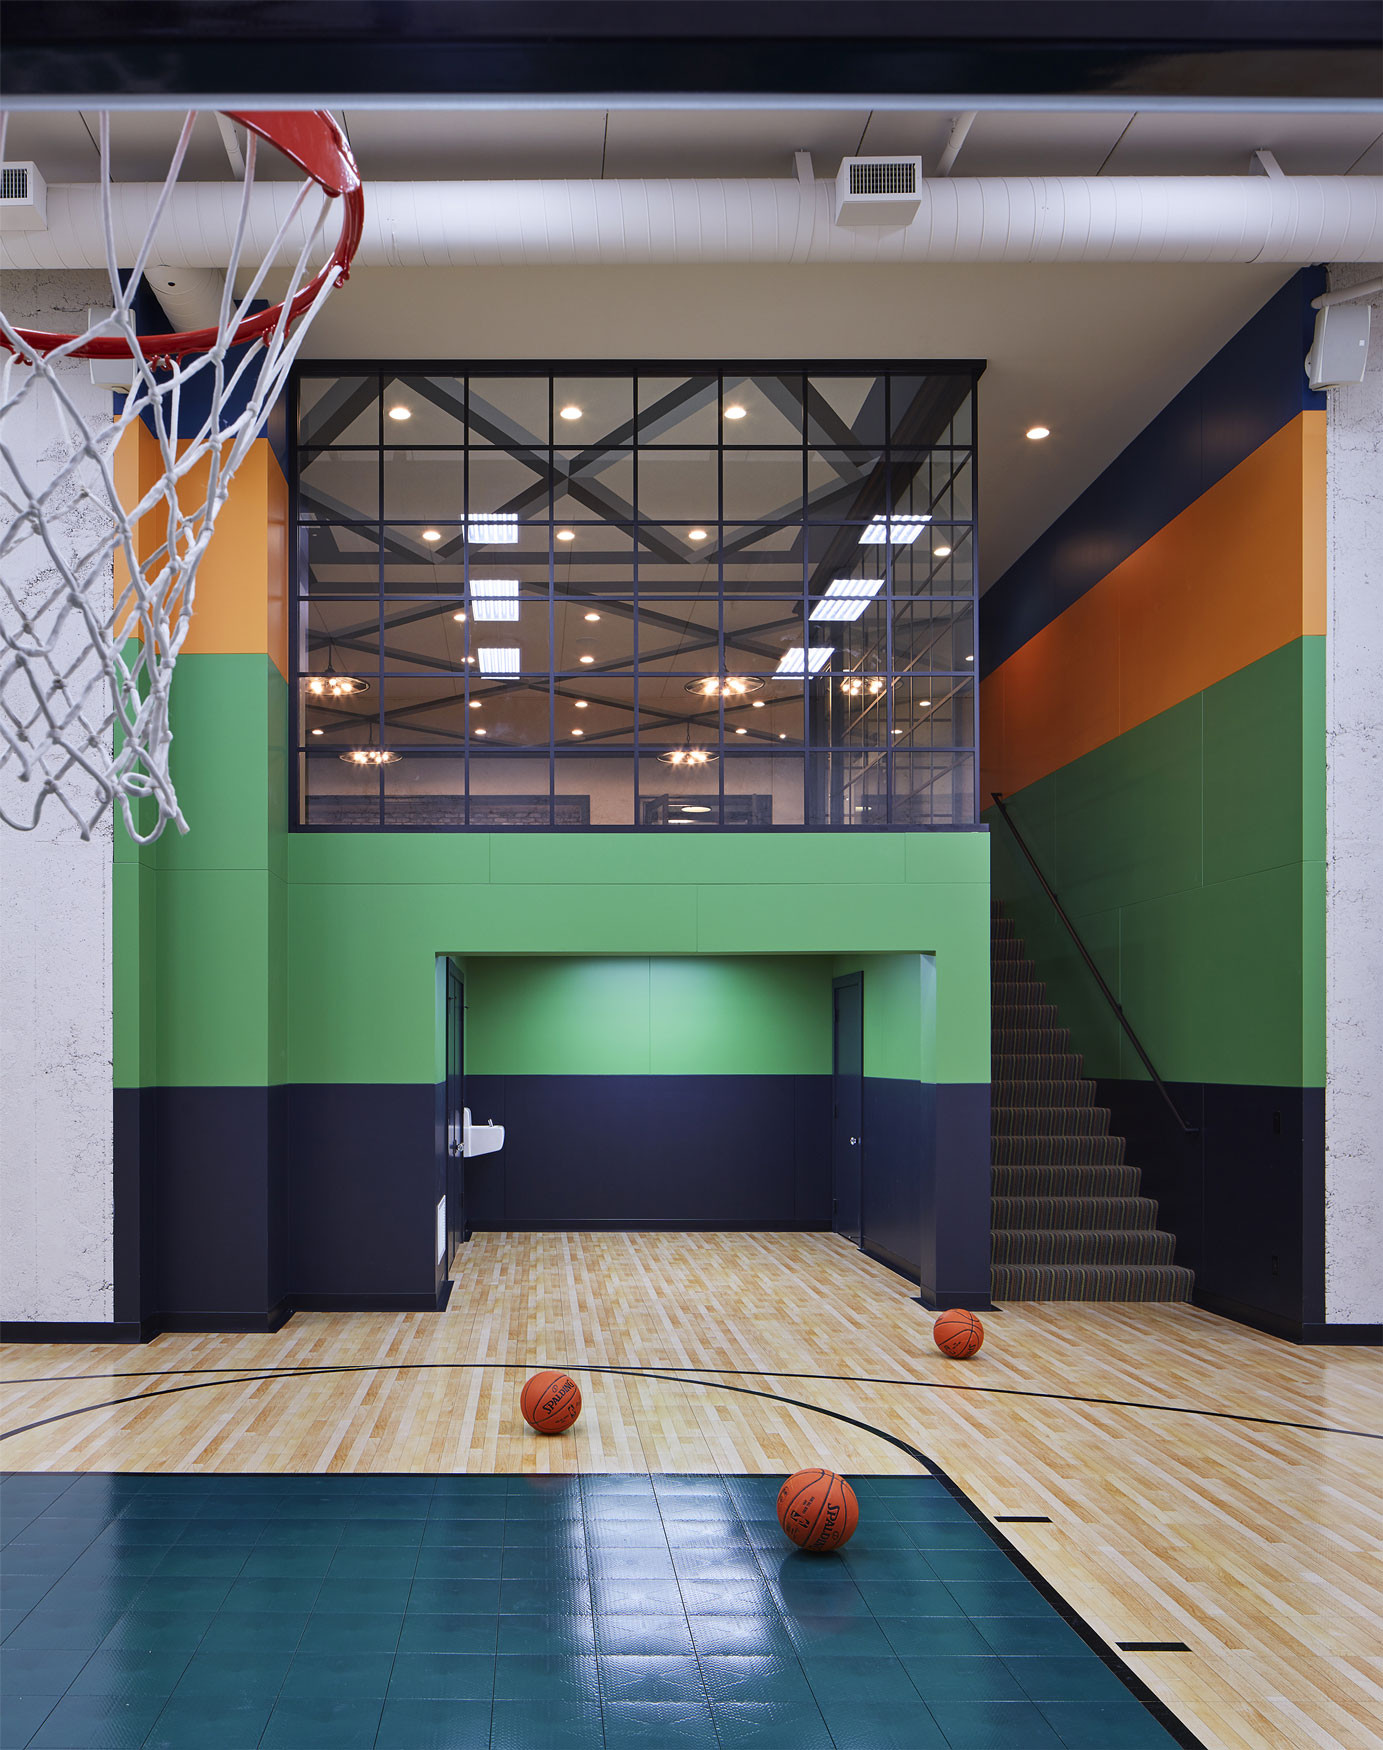 75 Beautiful Indoor Sport Court Pictures Ideas April 2021 Houzz